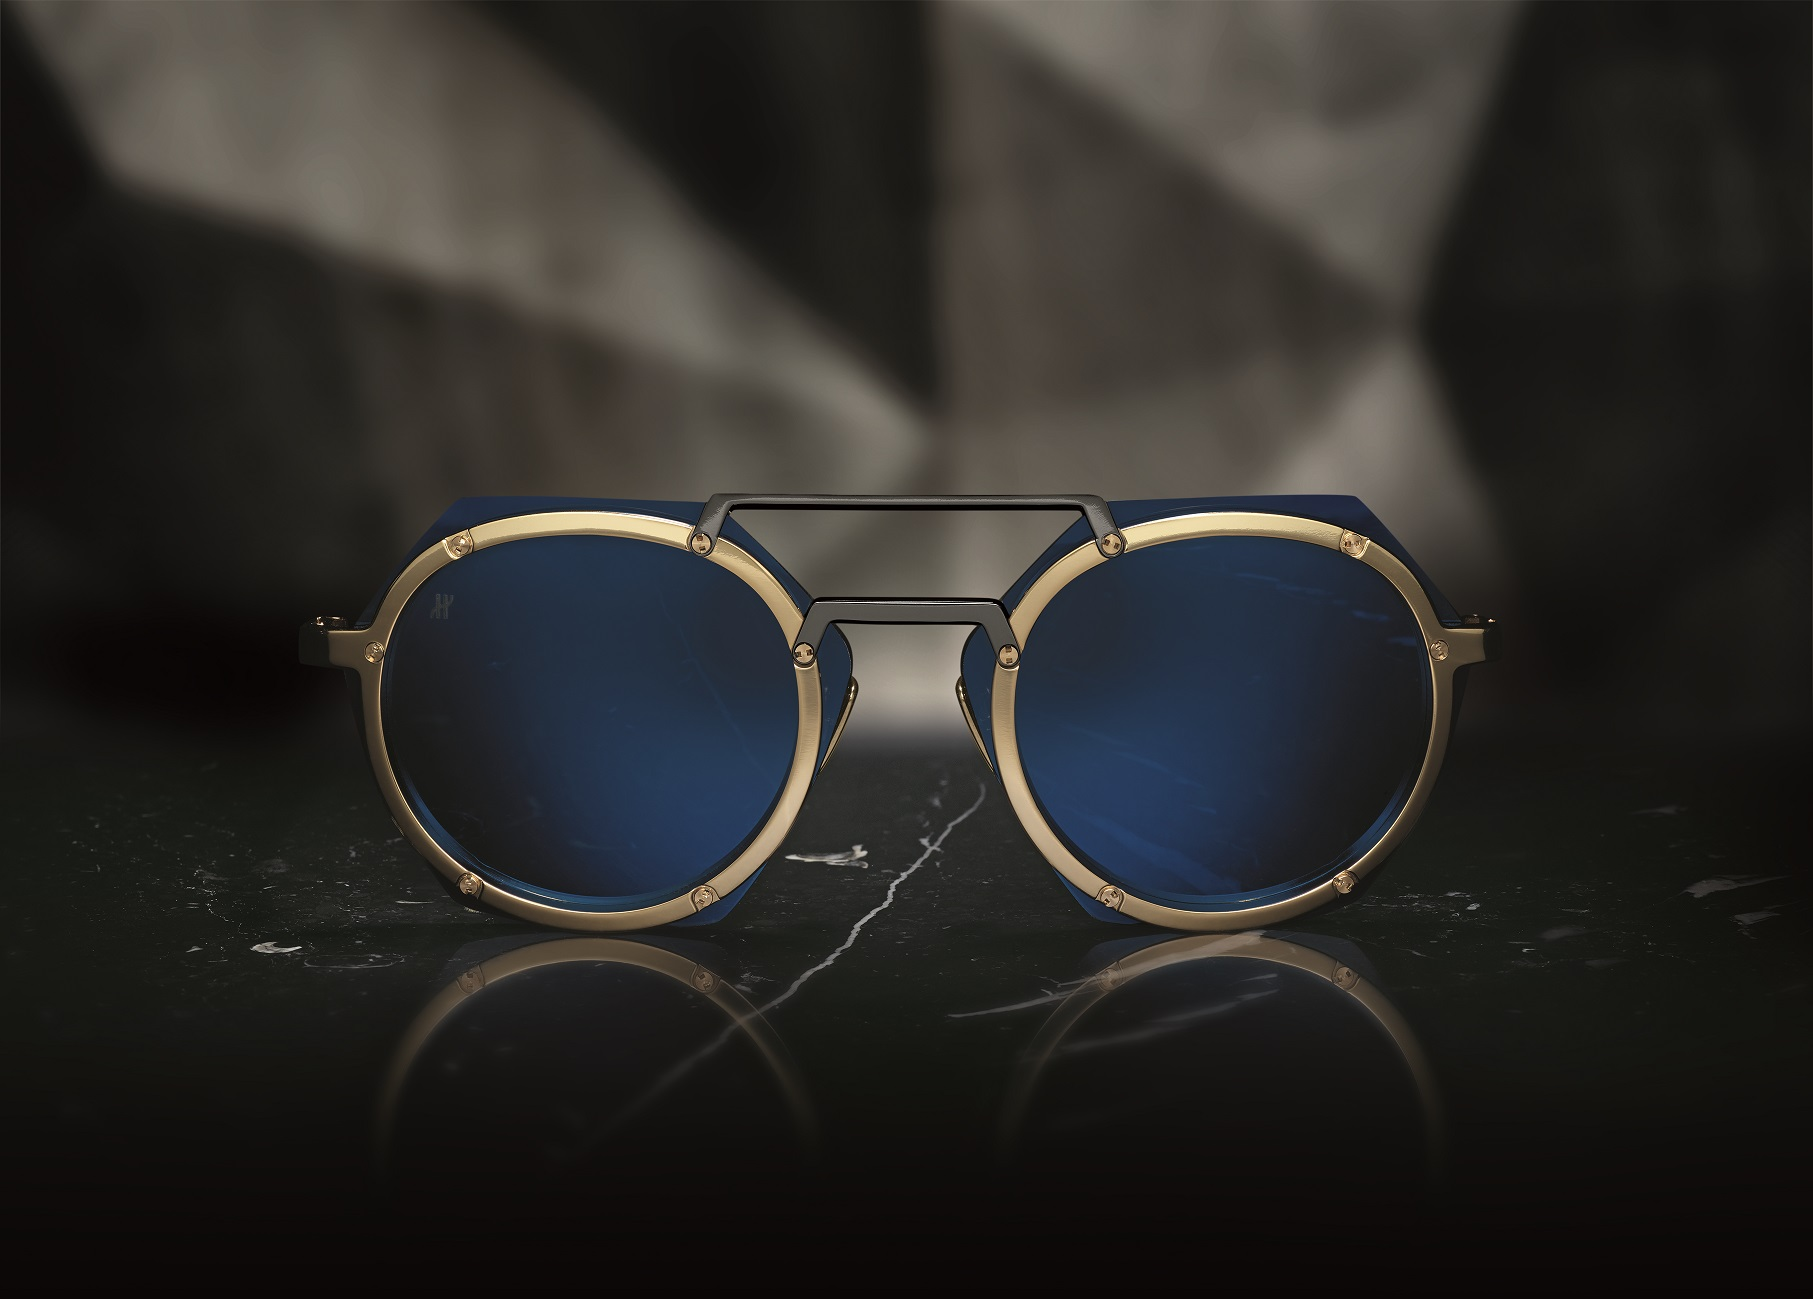 A picture from the Hublot Eyewear collection by Italia Independent ad campaign.